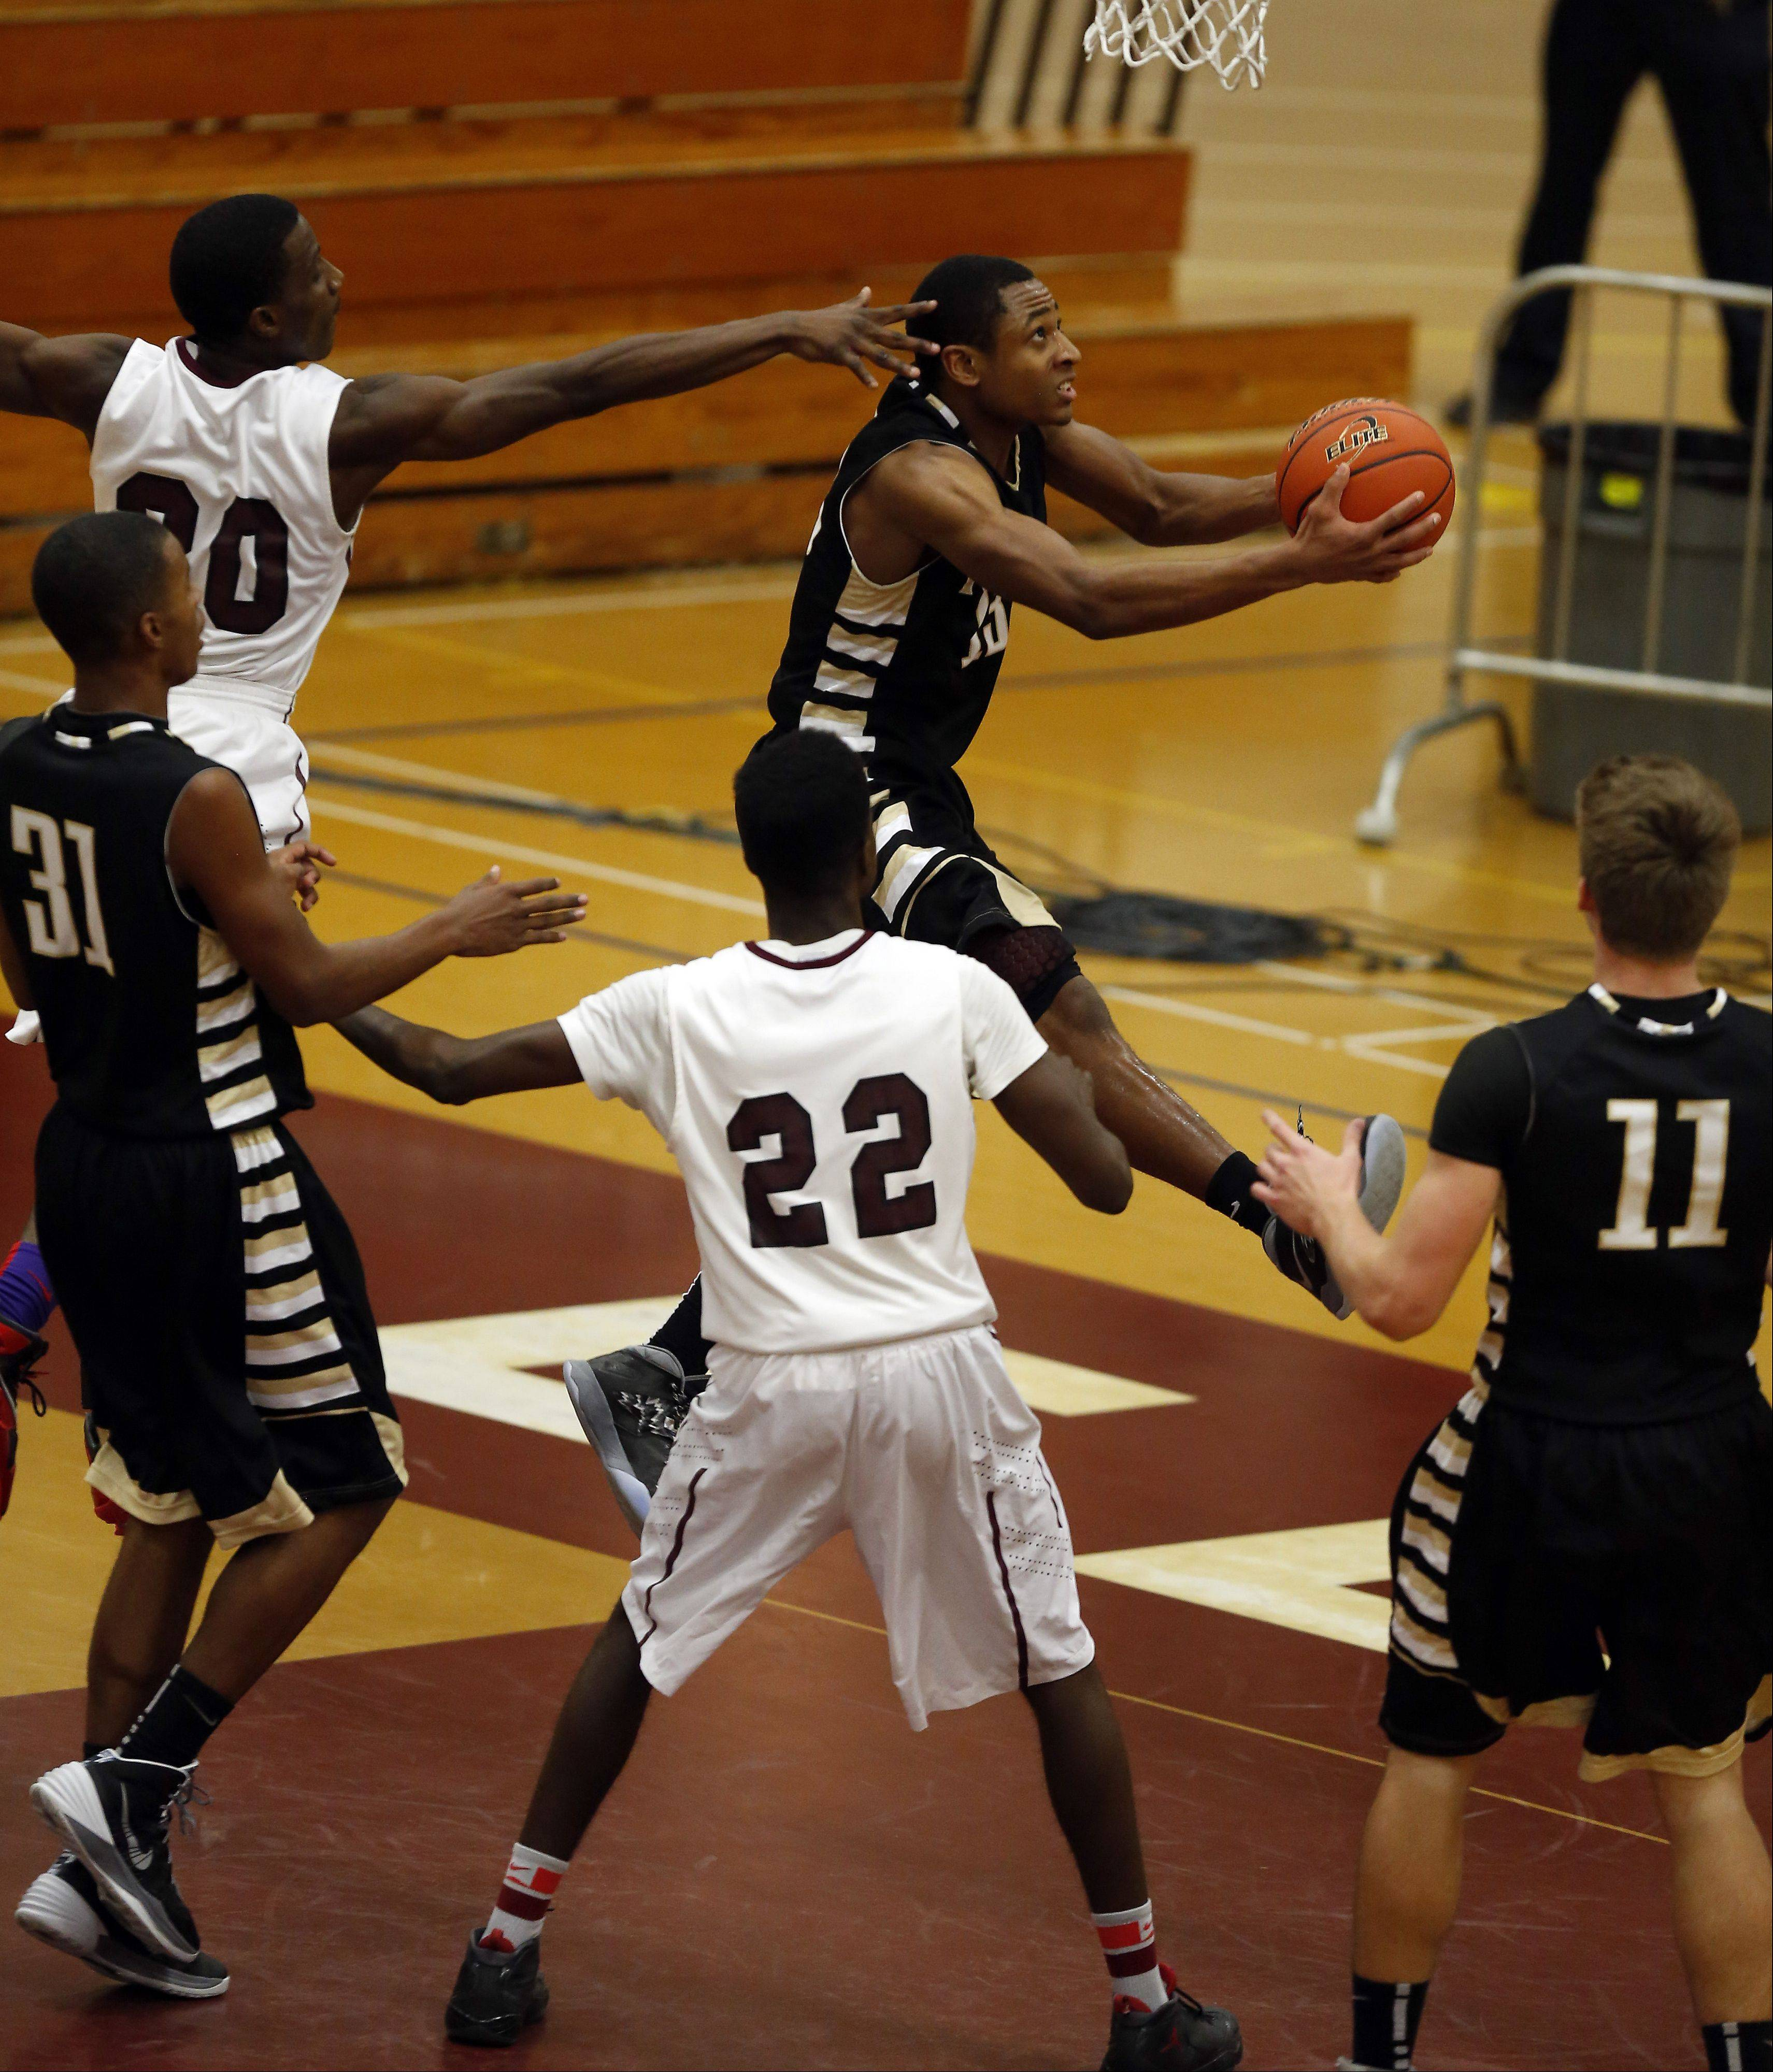 Images from Elgin vs Glenbard North at the 39th Annual Elgin Boys Holiday Basketball Tournament at Elgin High School Saturday December 28, 2013.